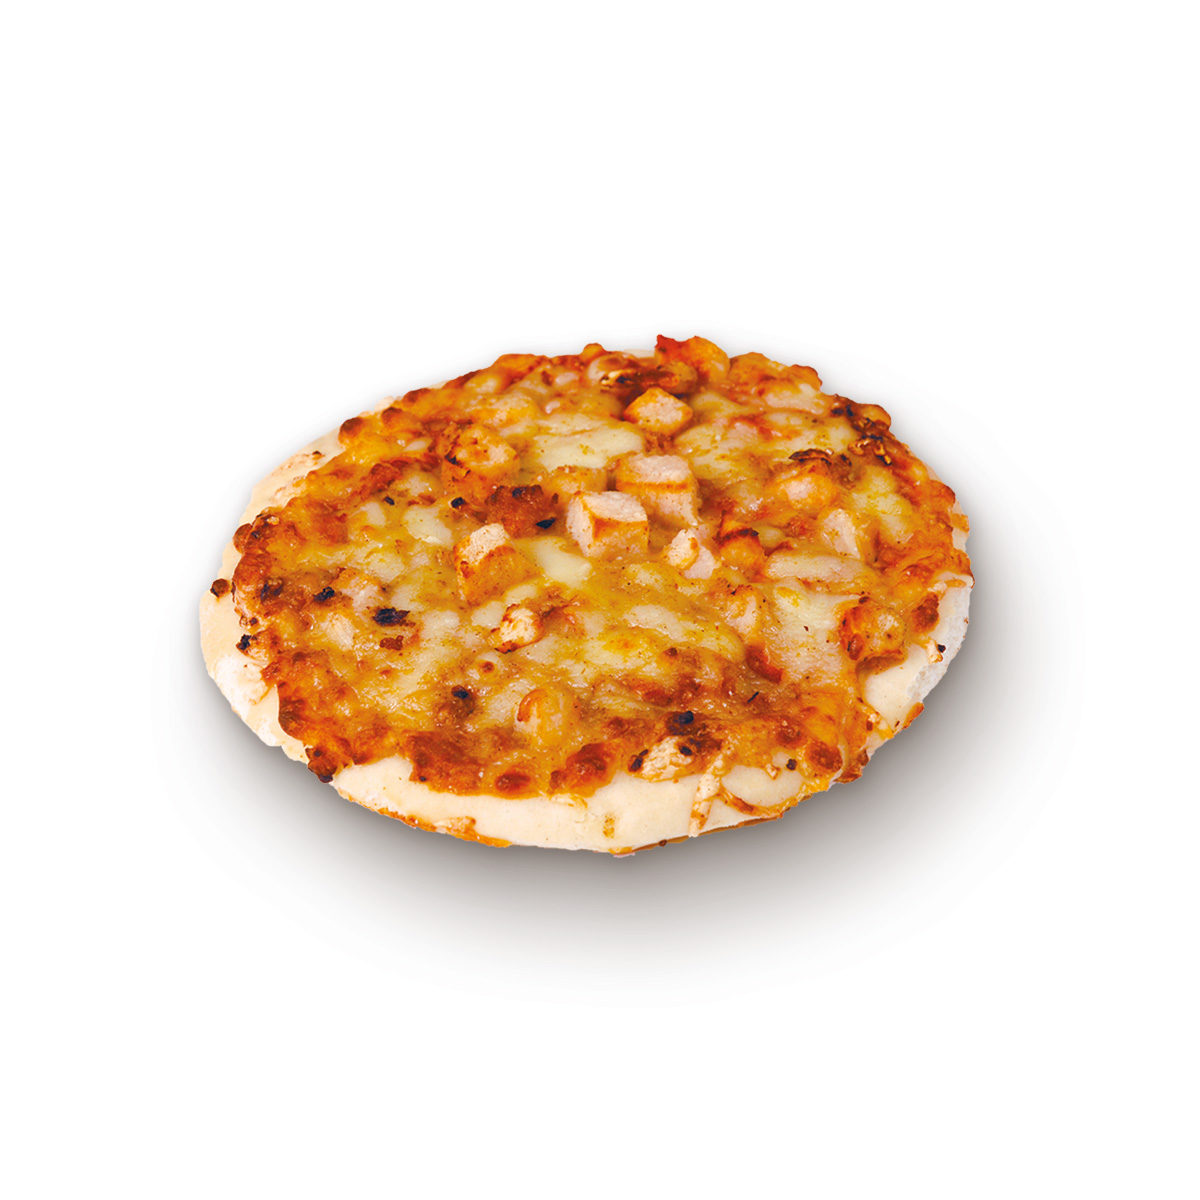 Spicy chicken and cheese pizza